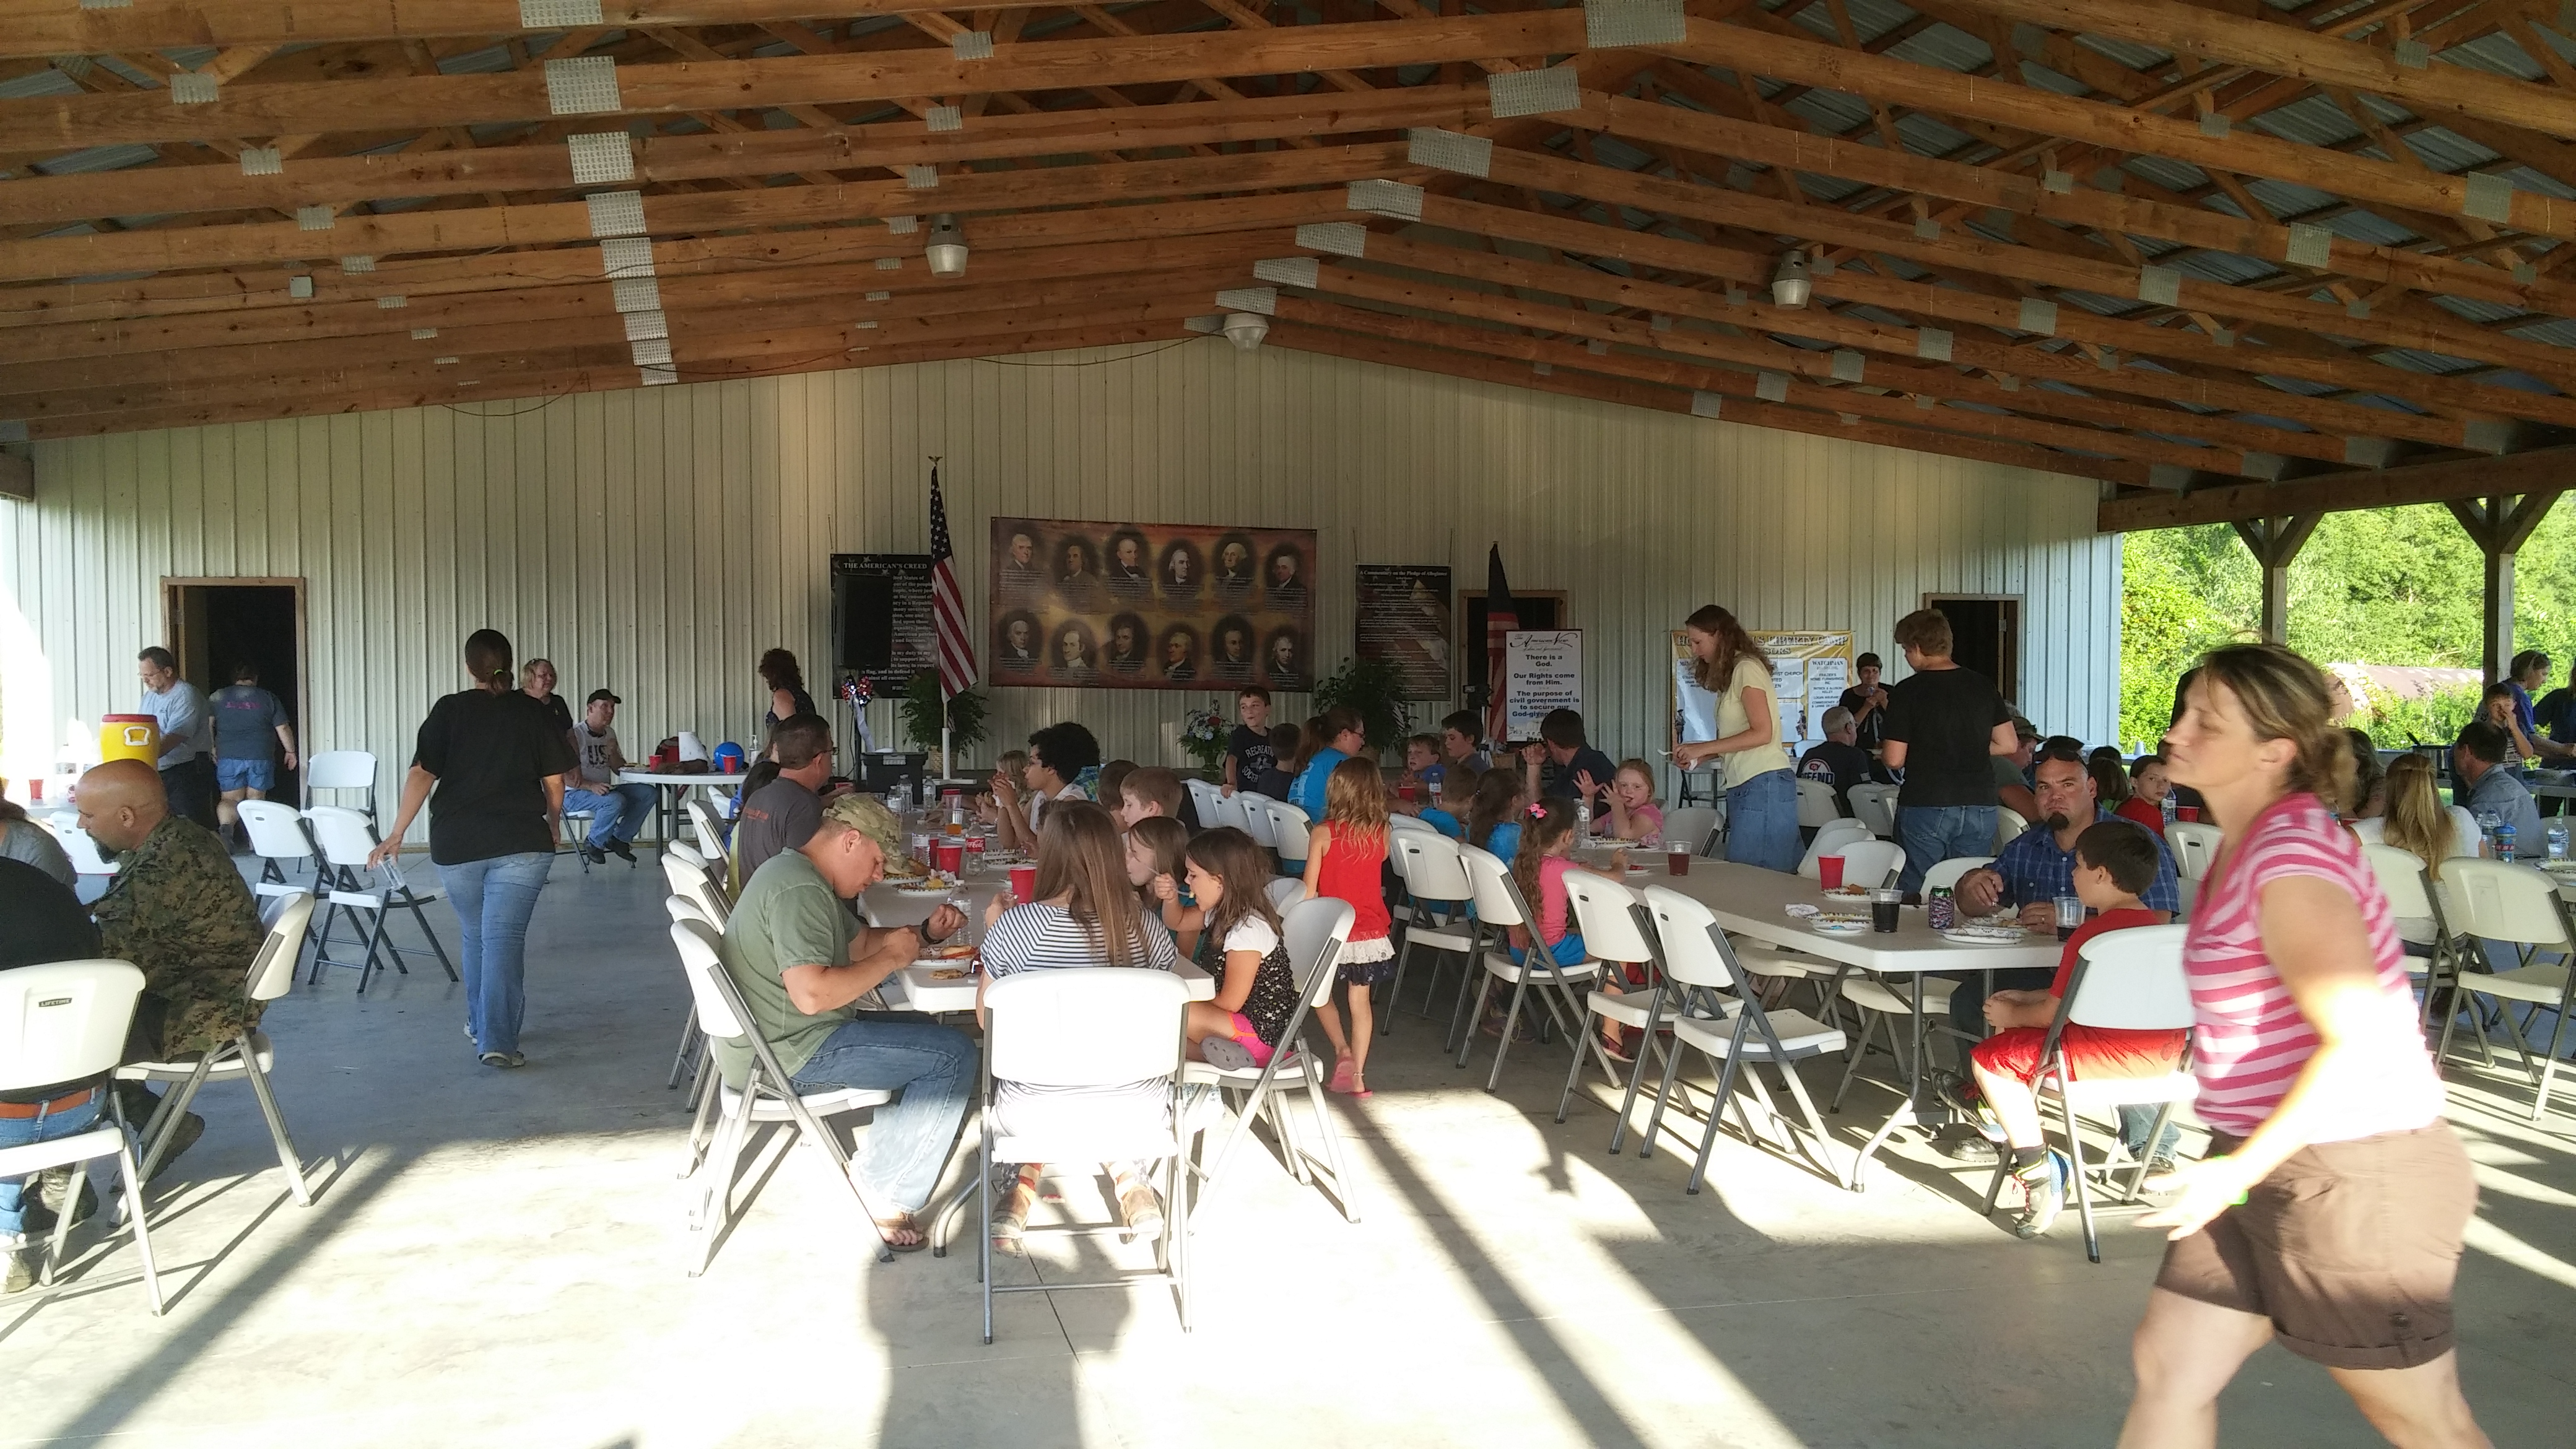 Campers and their families enjoy fellowship at the picnic